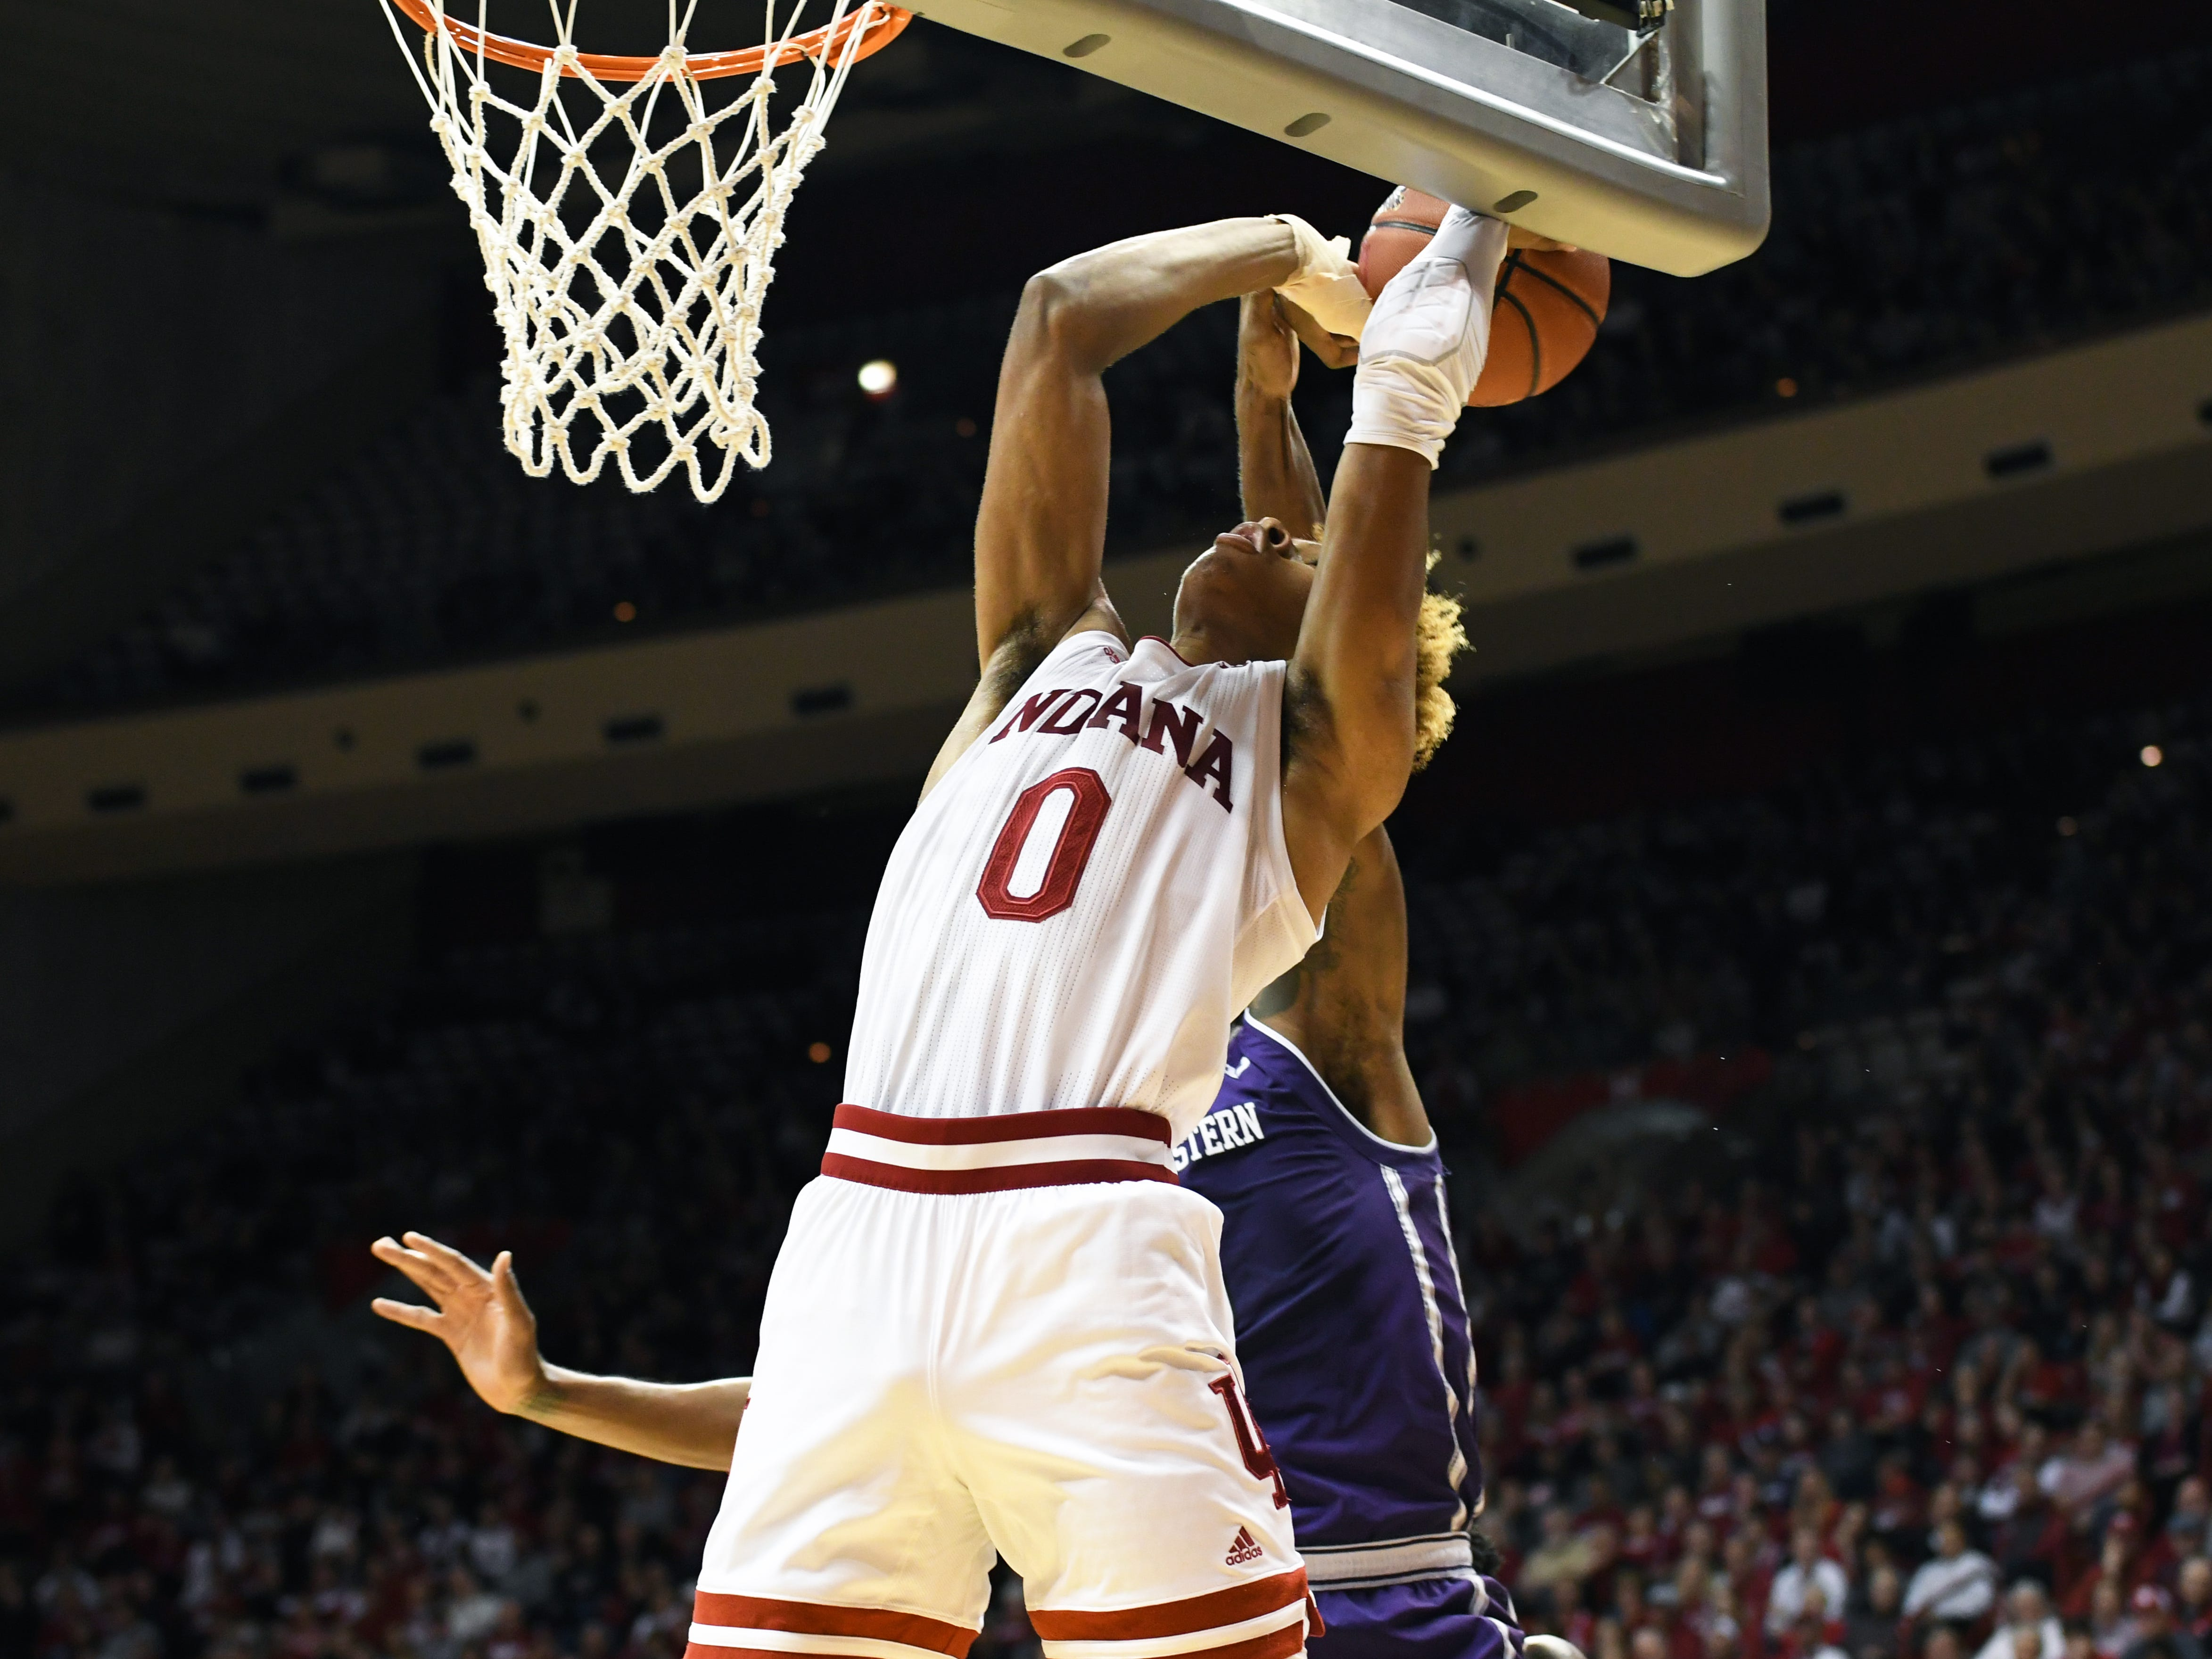 Indiana Hoosiers guard Romeo Langford (0) has his shot blocked during the game against Northwestern at Simon Skjodt Assembly Hall in Bloomington, Ind., on Saturday, Dec. 1, 2018.